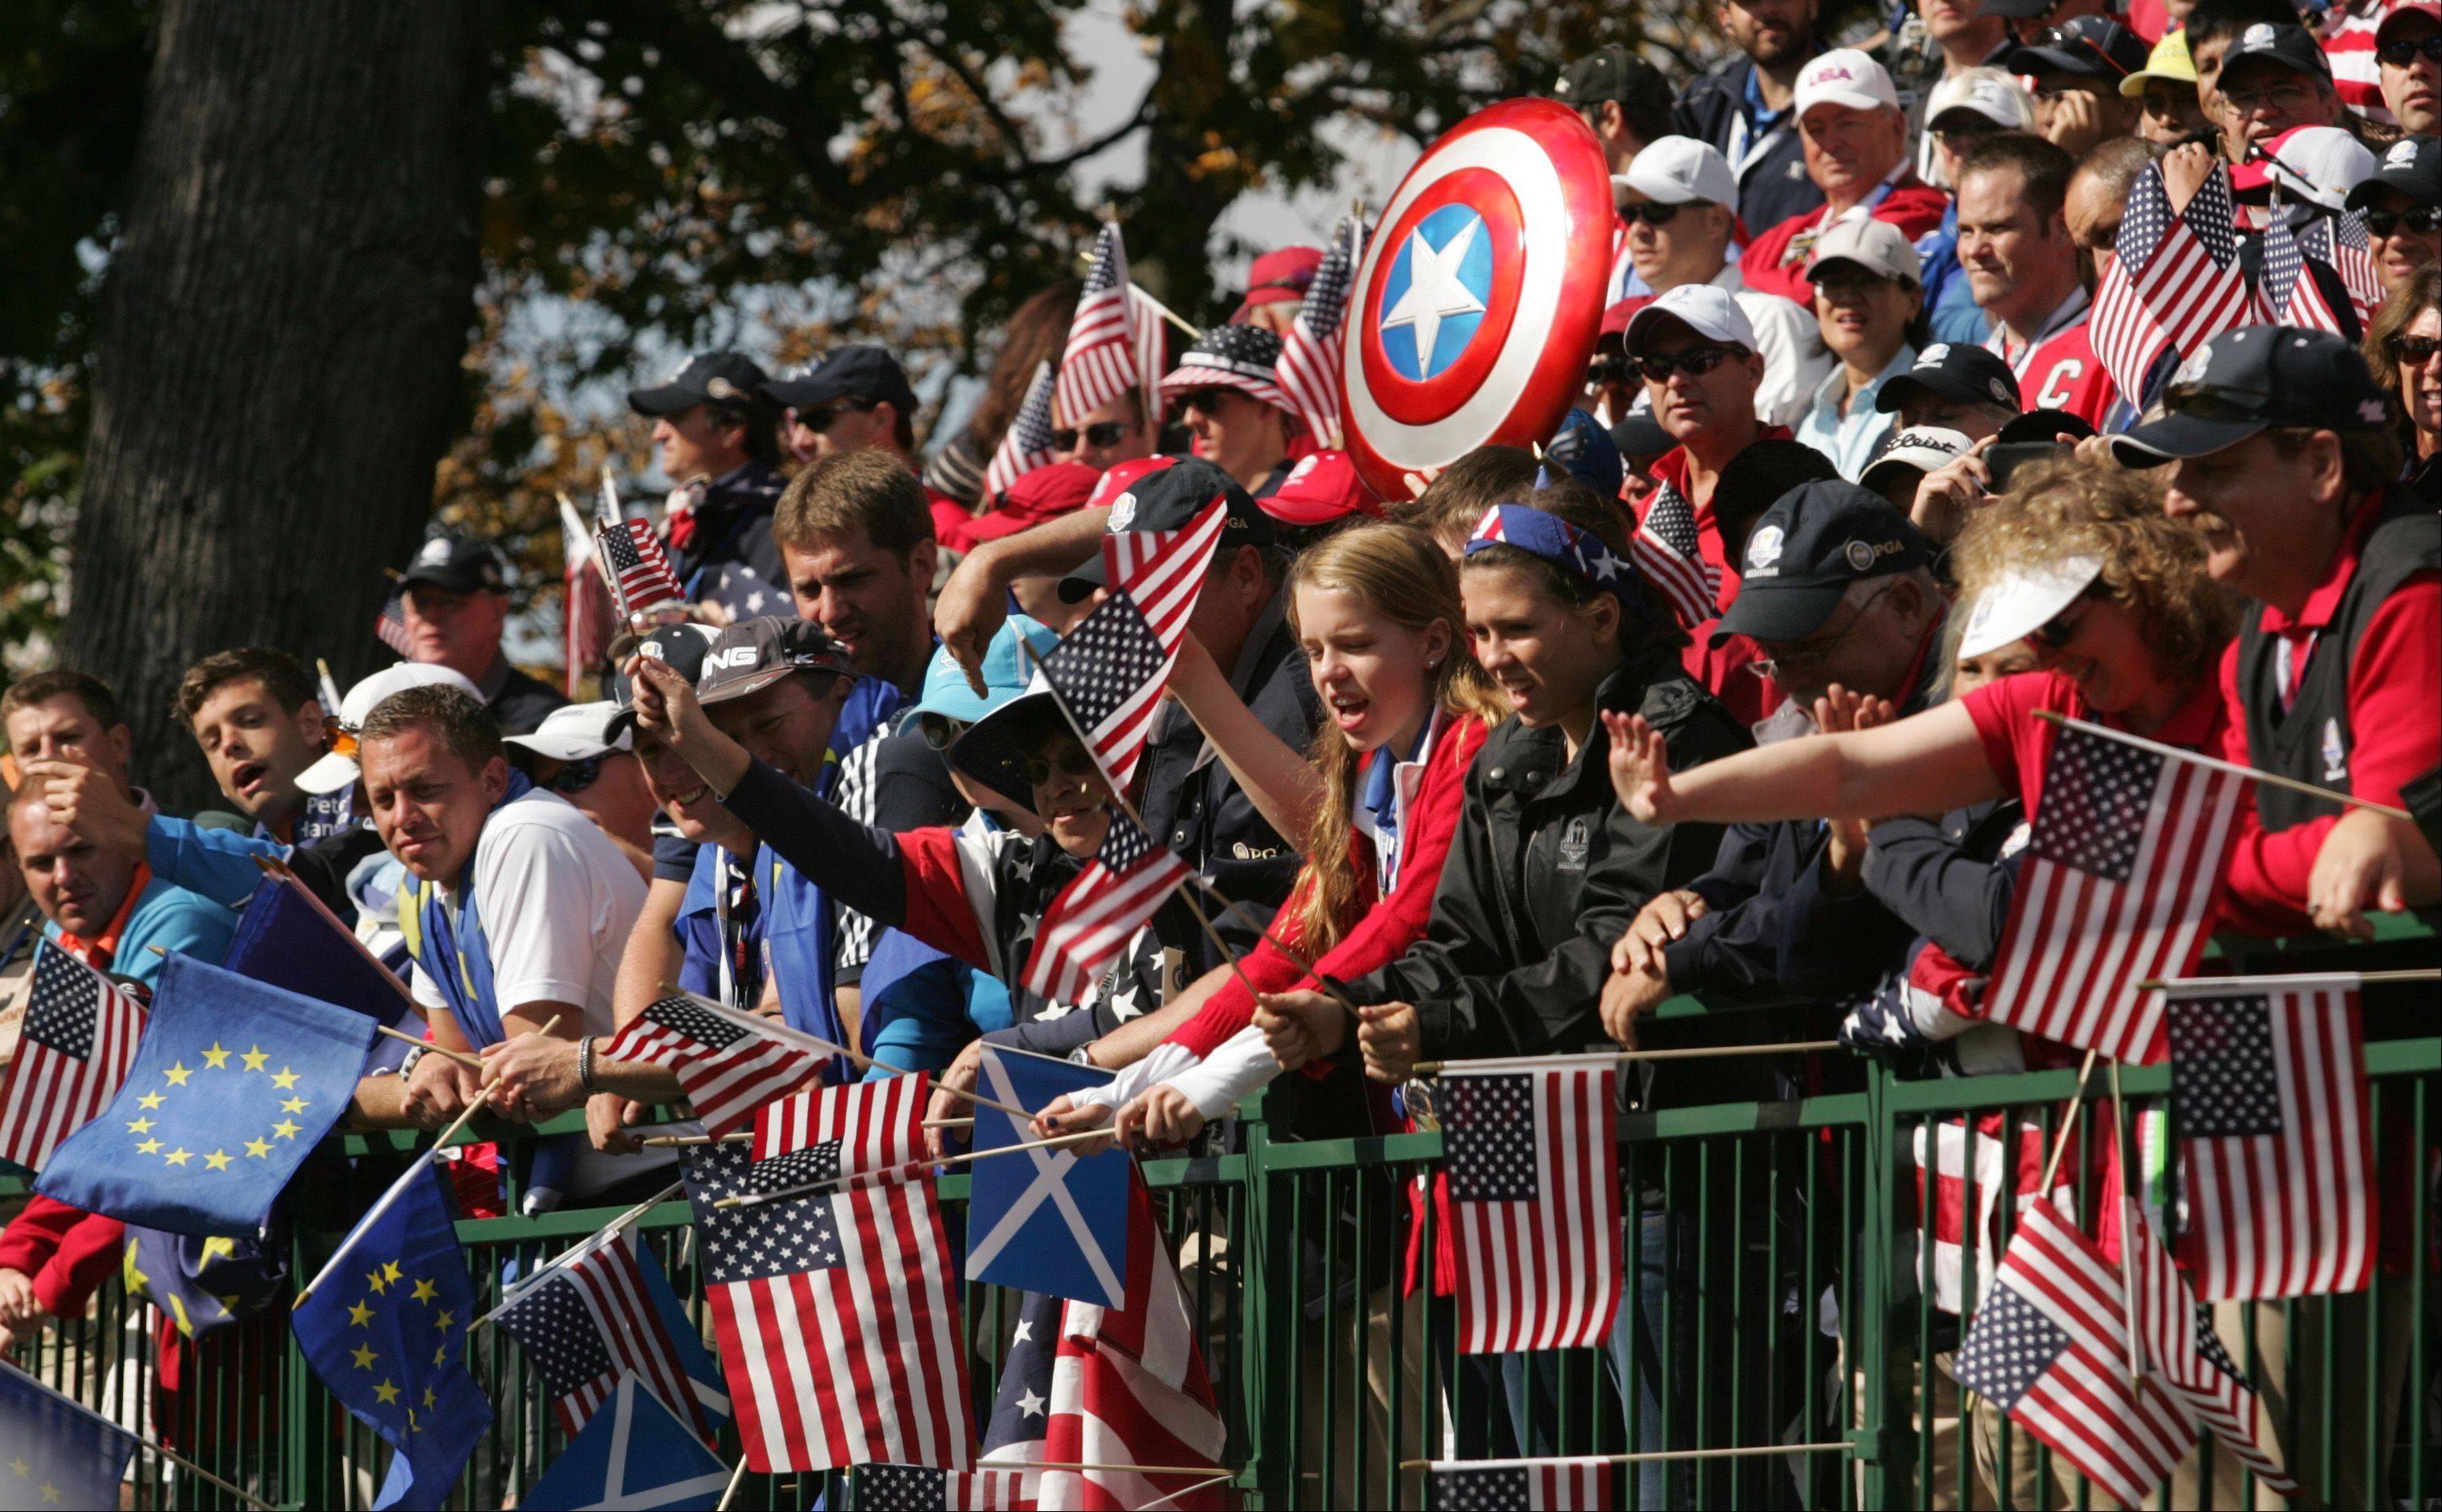 Fans clamor for freebies being tossed out by the Team USA assistant captain as they wait for the start of the final day of the Ryder Cup at Medinah.